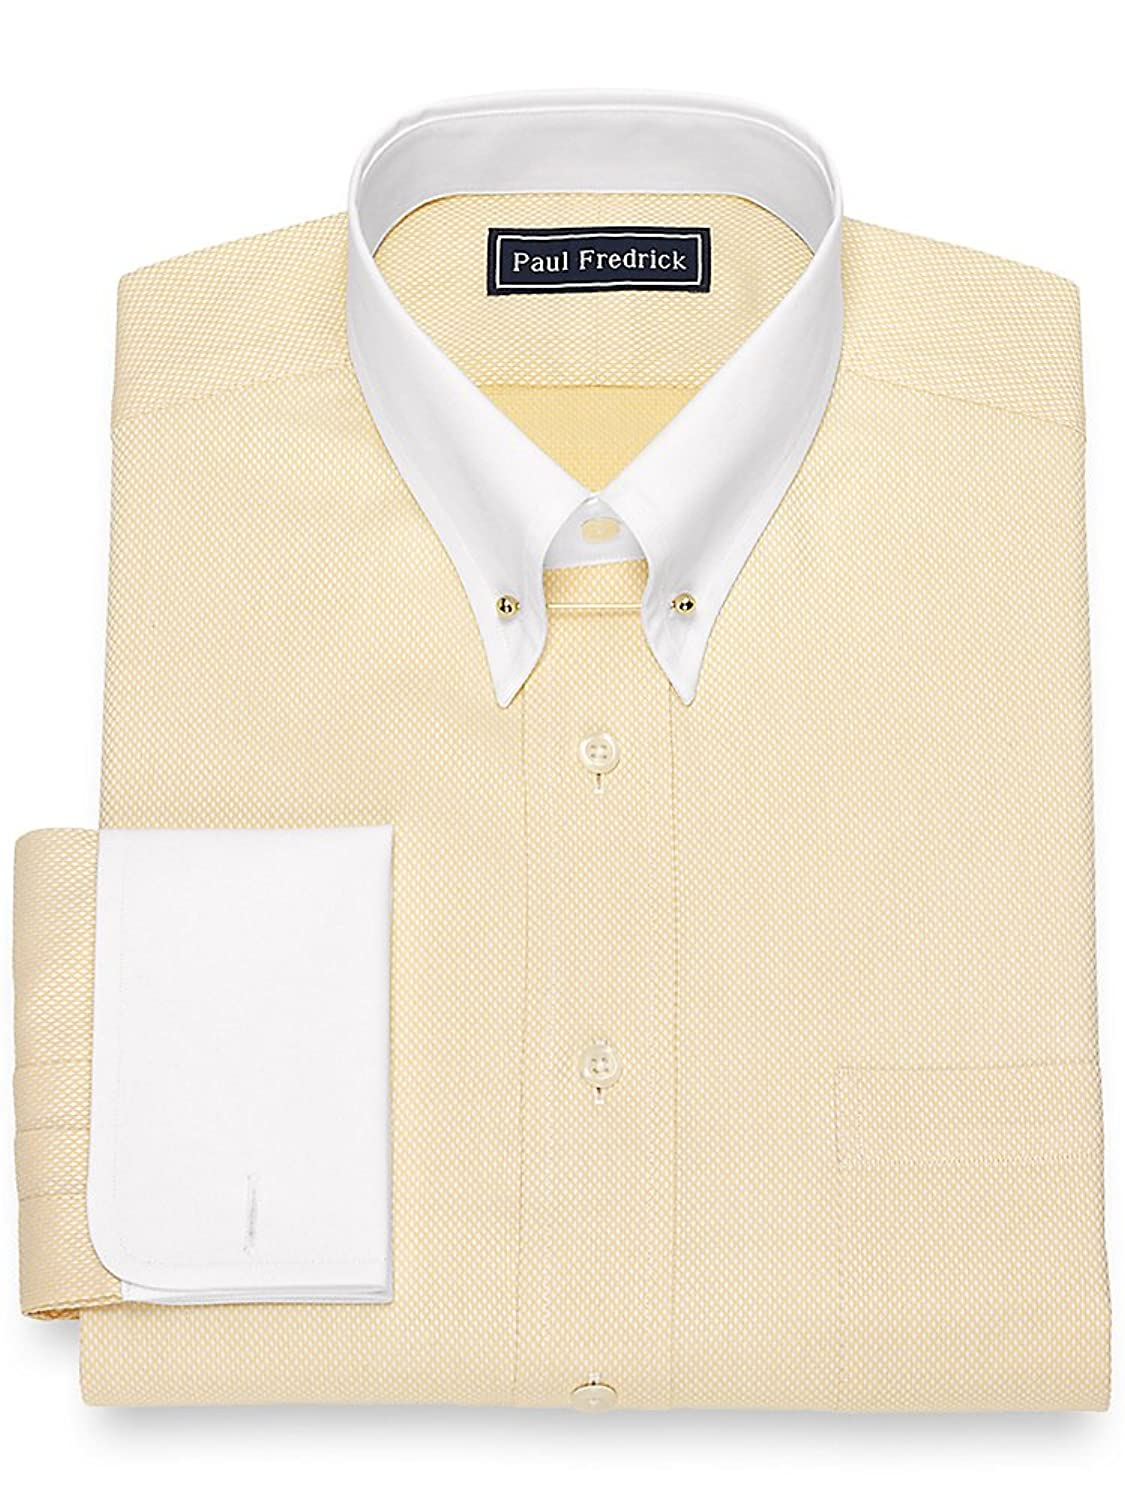 1920s Style Mens Shirts | Peaky Blinders Shirts and Collars Paul Fredrick Mens Slim Fit Diamond Pattern Dress Shirt $79.50 AT vintagedancer.com